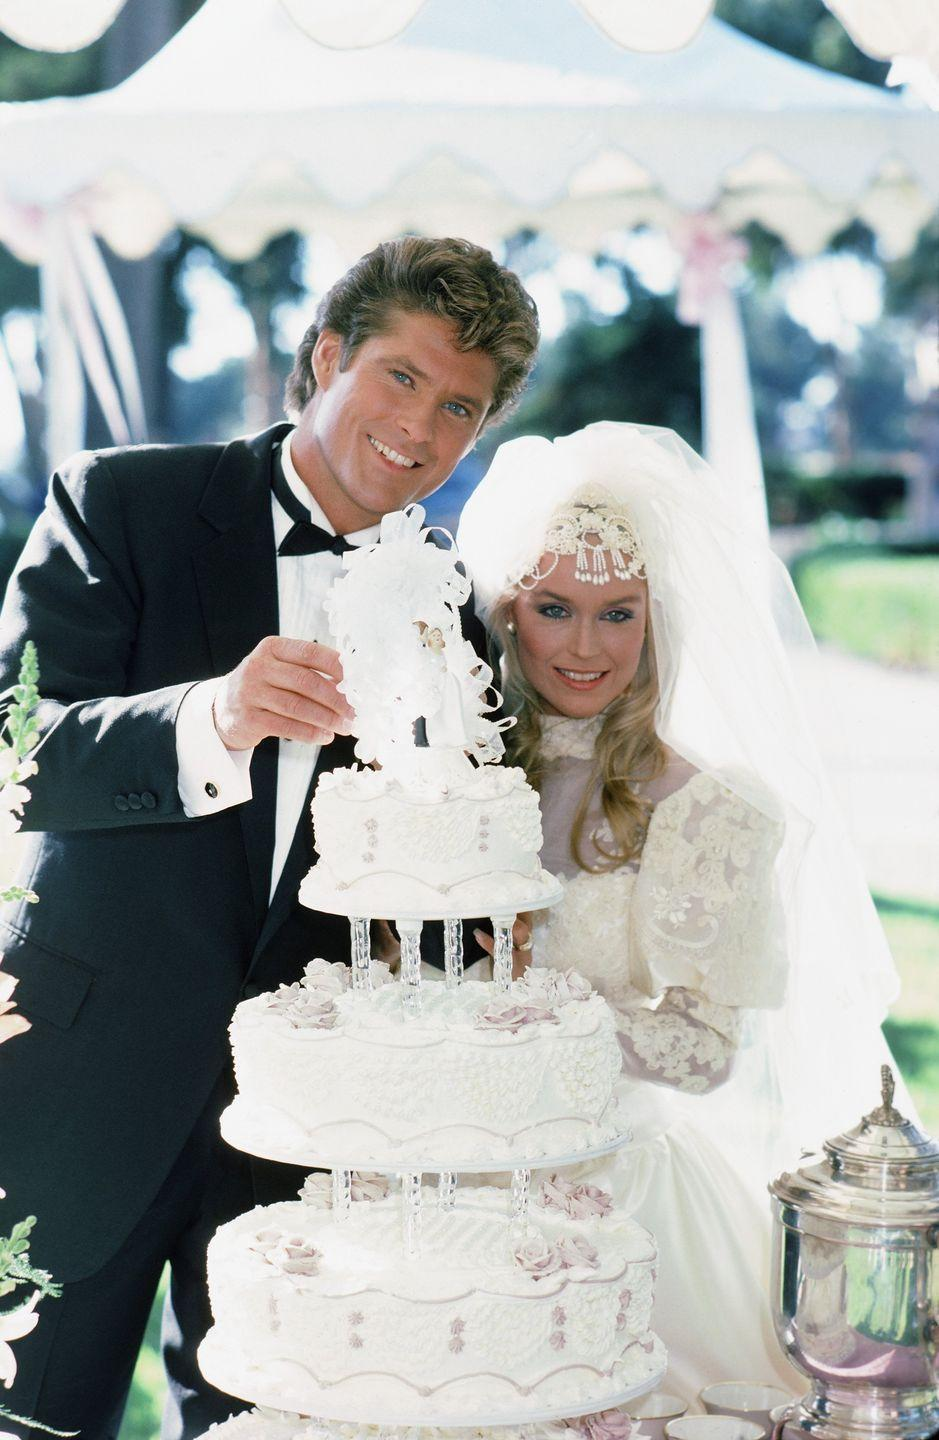 <p>After the recession ended in 1983, wedding receptions became more and more extravagant. Elaborate multi-tiered wedding cakes—like this one featured on an episode of <i>Knight Rider</i>—were a must-have, with some towering as tall as eight tiers high.</p>